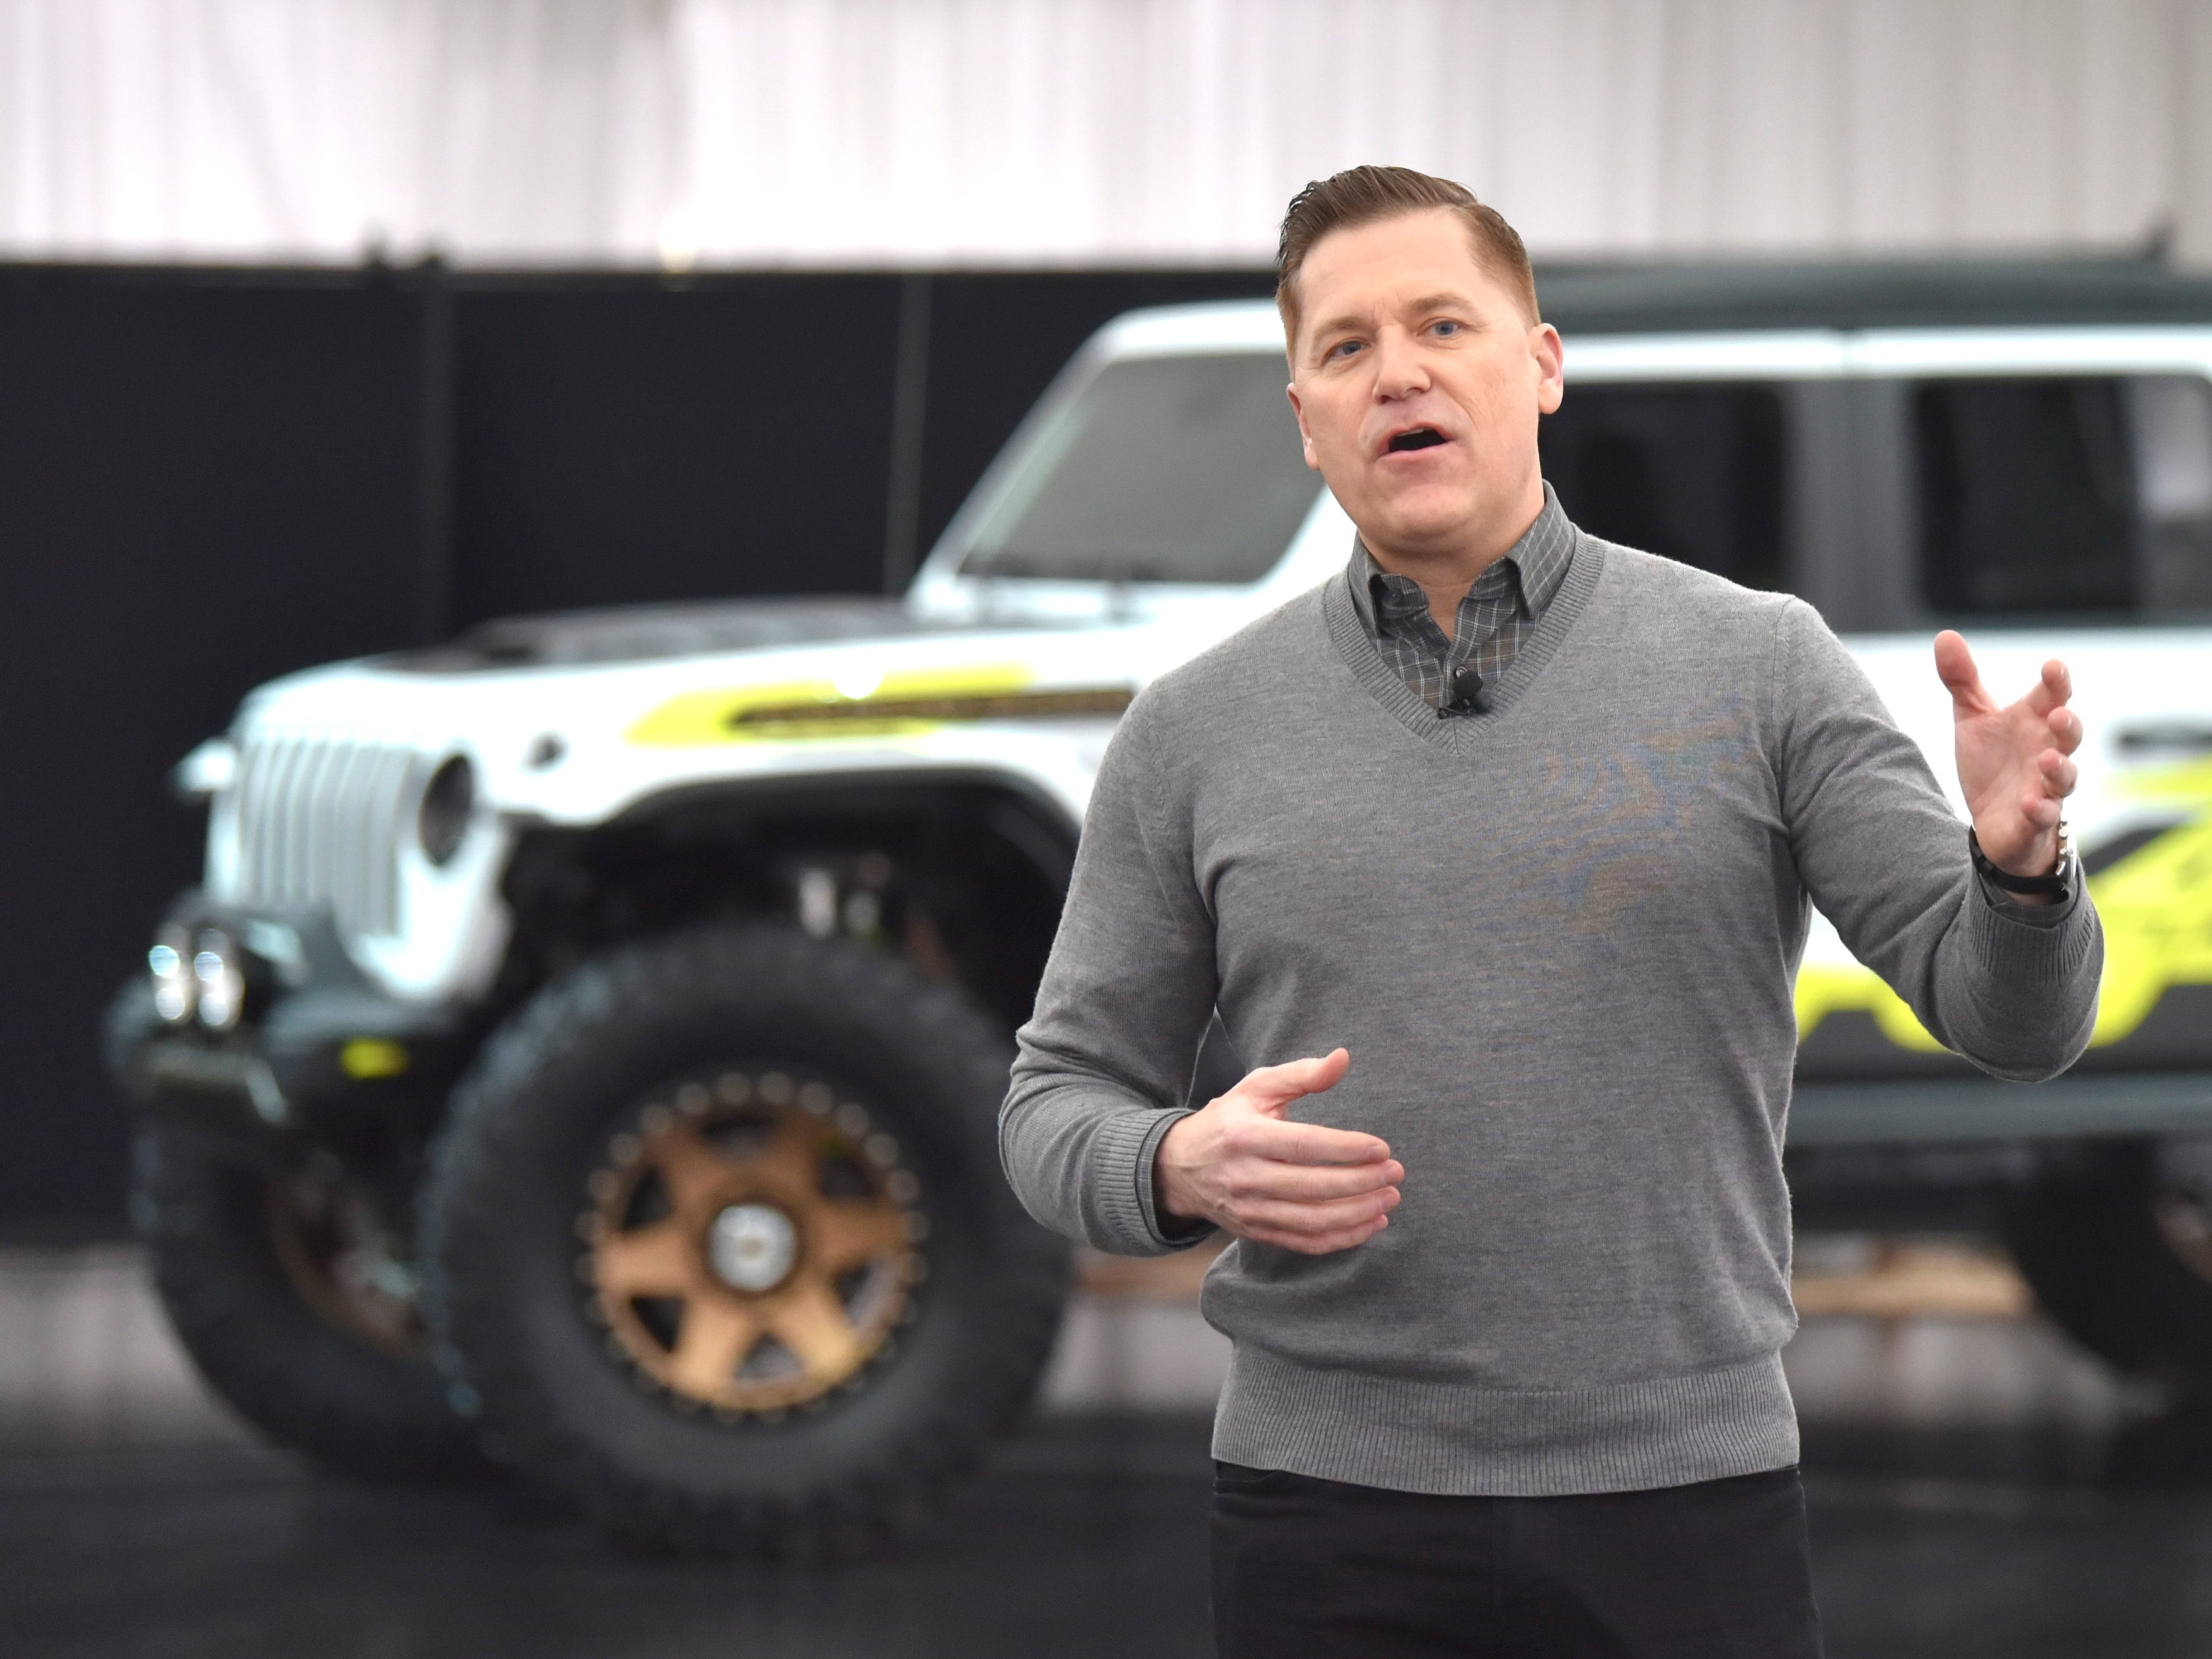 Tim Kuniski, Head of Jeep Brand - North America, talks in front of the Jeep Flatbill, colored in white and acid green as several Jeep and Mopar executives unveil six concept vehicles, Friday morning, April 5, 2019, inside the FCA Design Dome in Auburn Hills prior to the 53rd Annual Moab Easter Jeep Safari. The annual event takes place in Moab, Utah, April 13-21, where thousands of off-road enthusiasts will participate in technical off-roading.